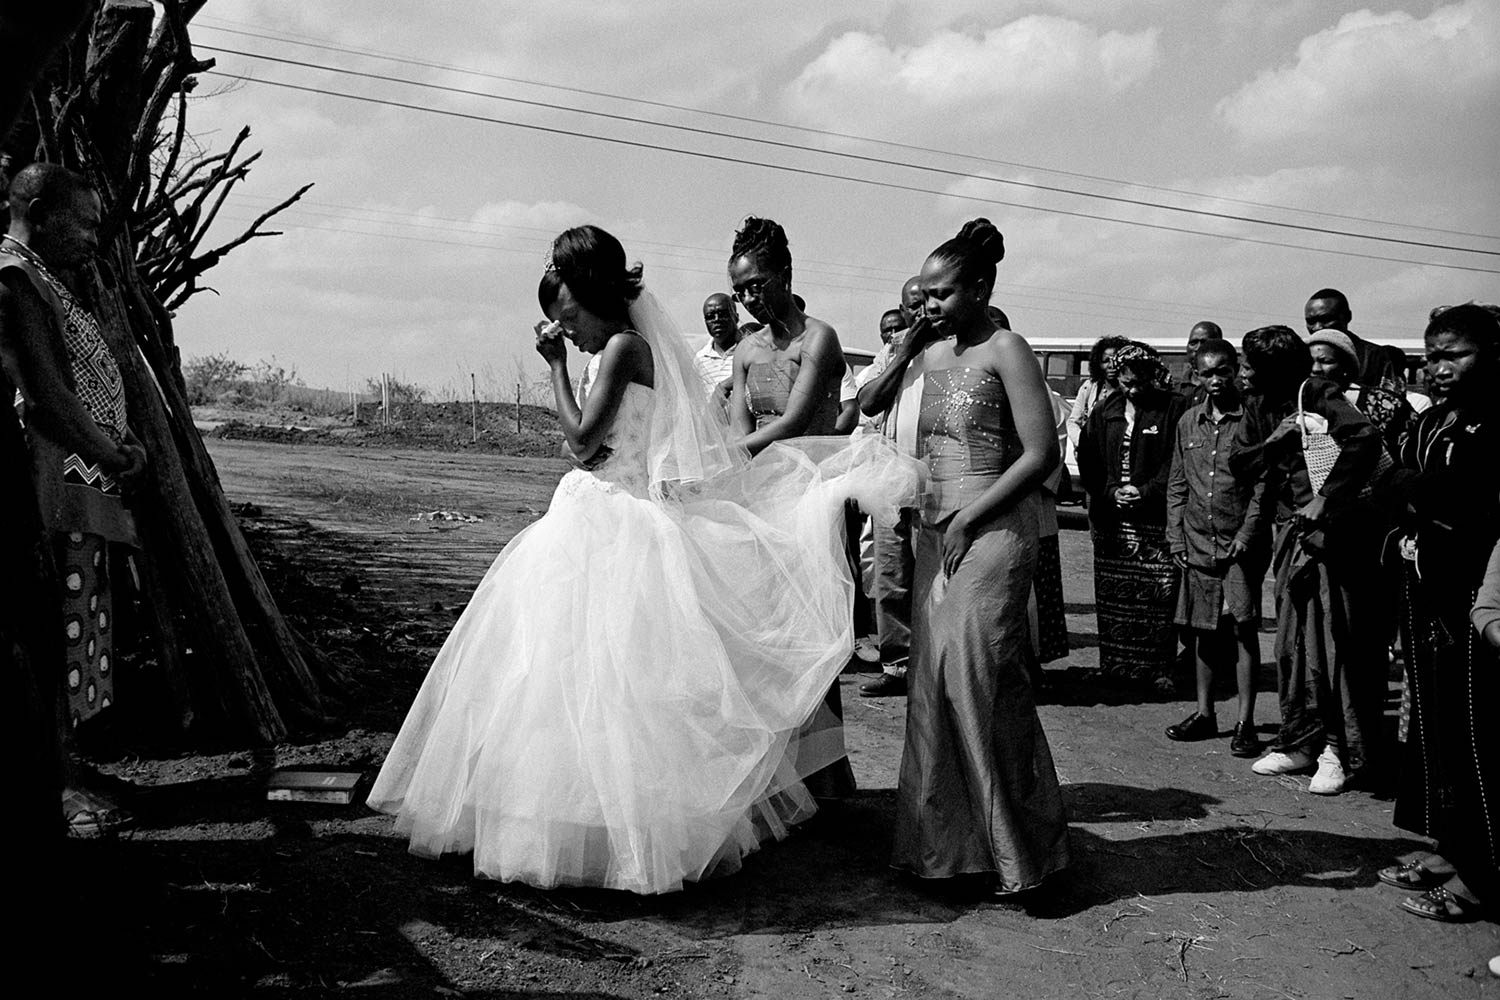 A young woman begins to cry before entering her new husband's homestead as she symbolically leaves her family behind in rural Swaziland. Swazi men are free to take as many wives as they would like as long as they can pay lobola, which is paid in cattle.